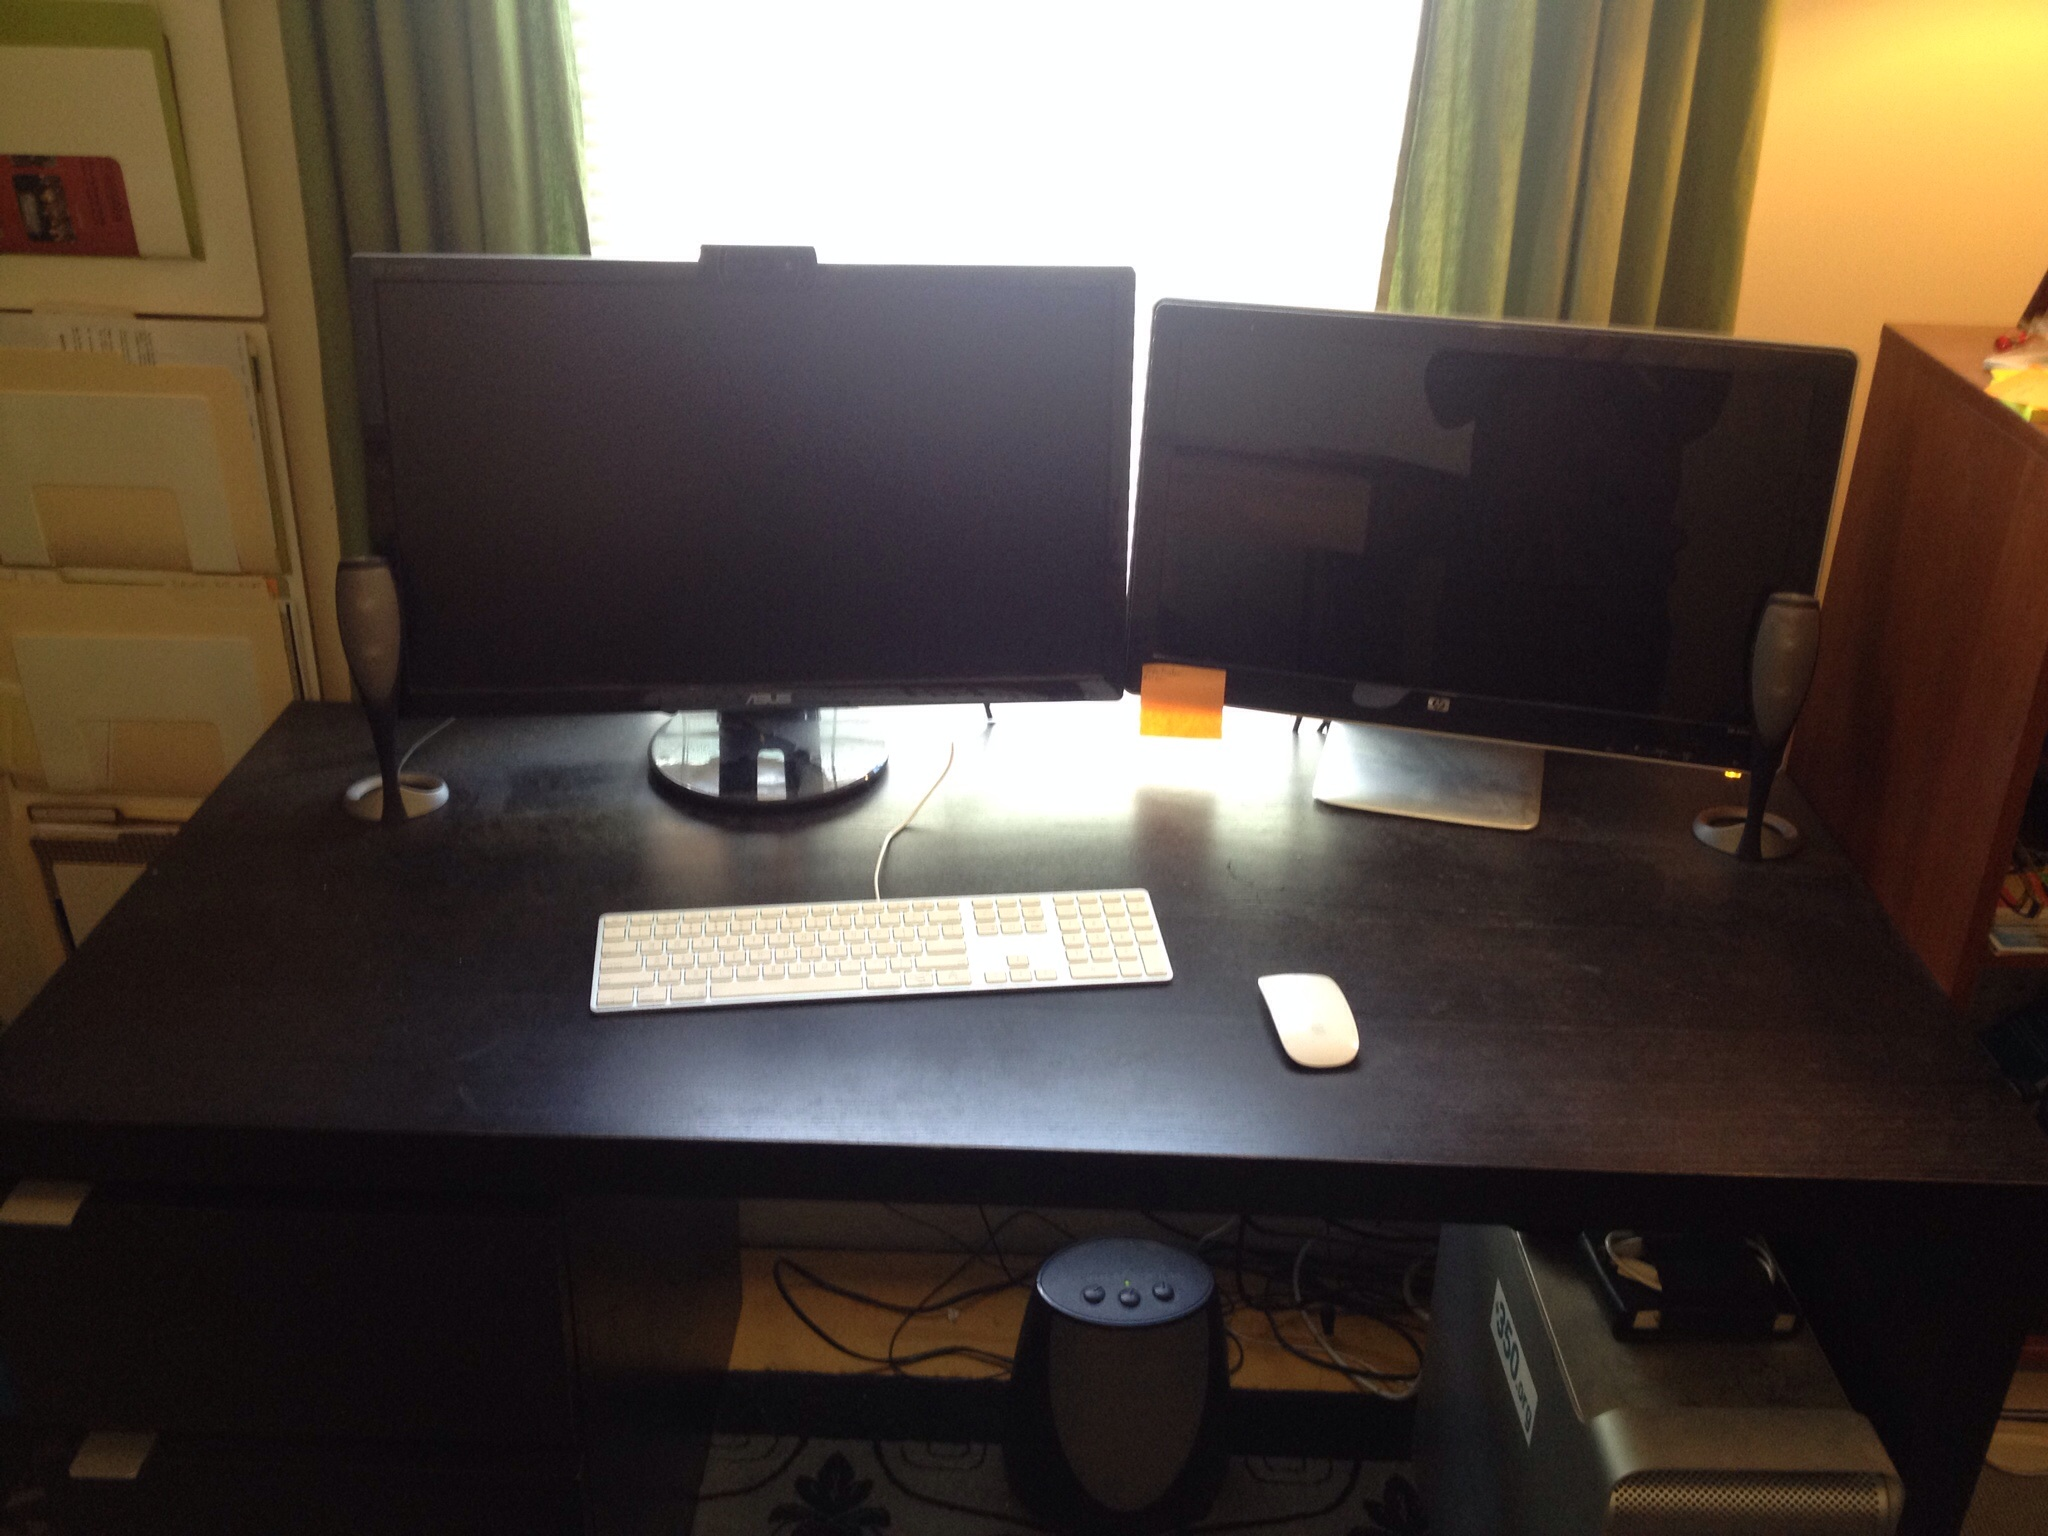 The Before desk setup.